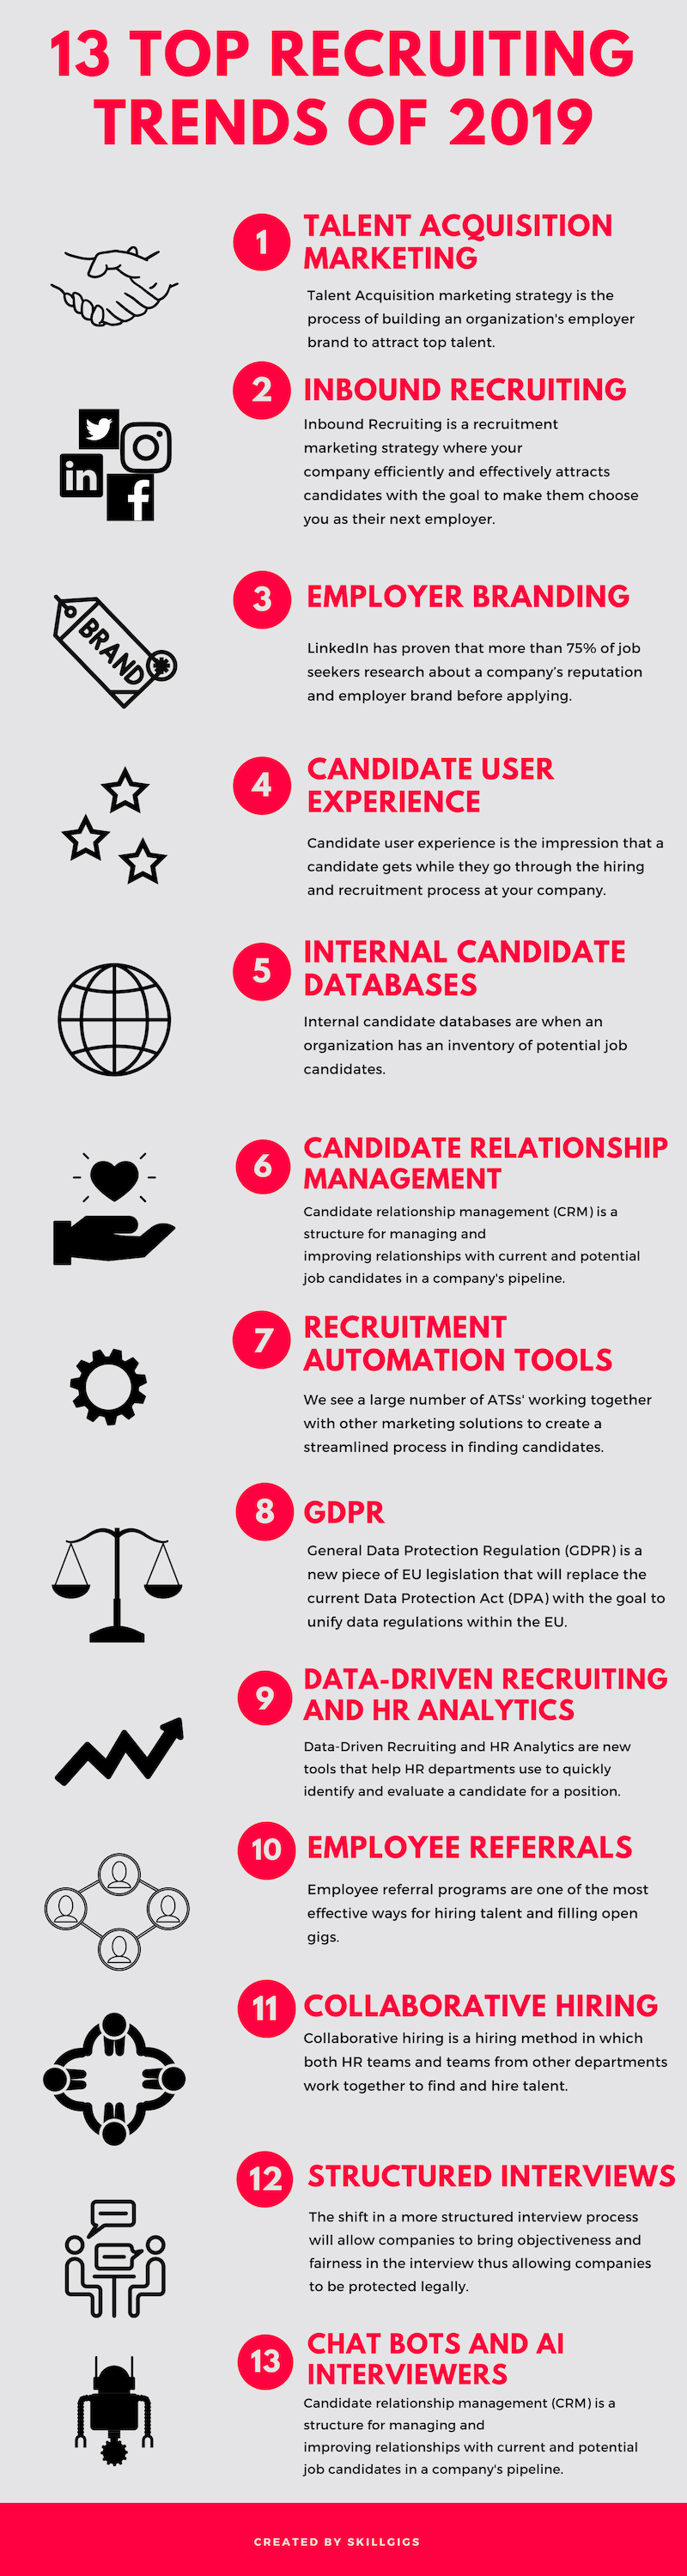 13 Top Recruiting Trends of 2019 Infographic